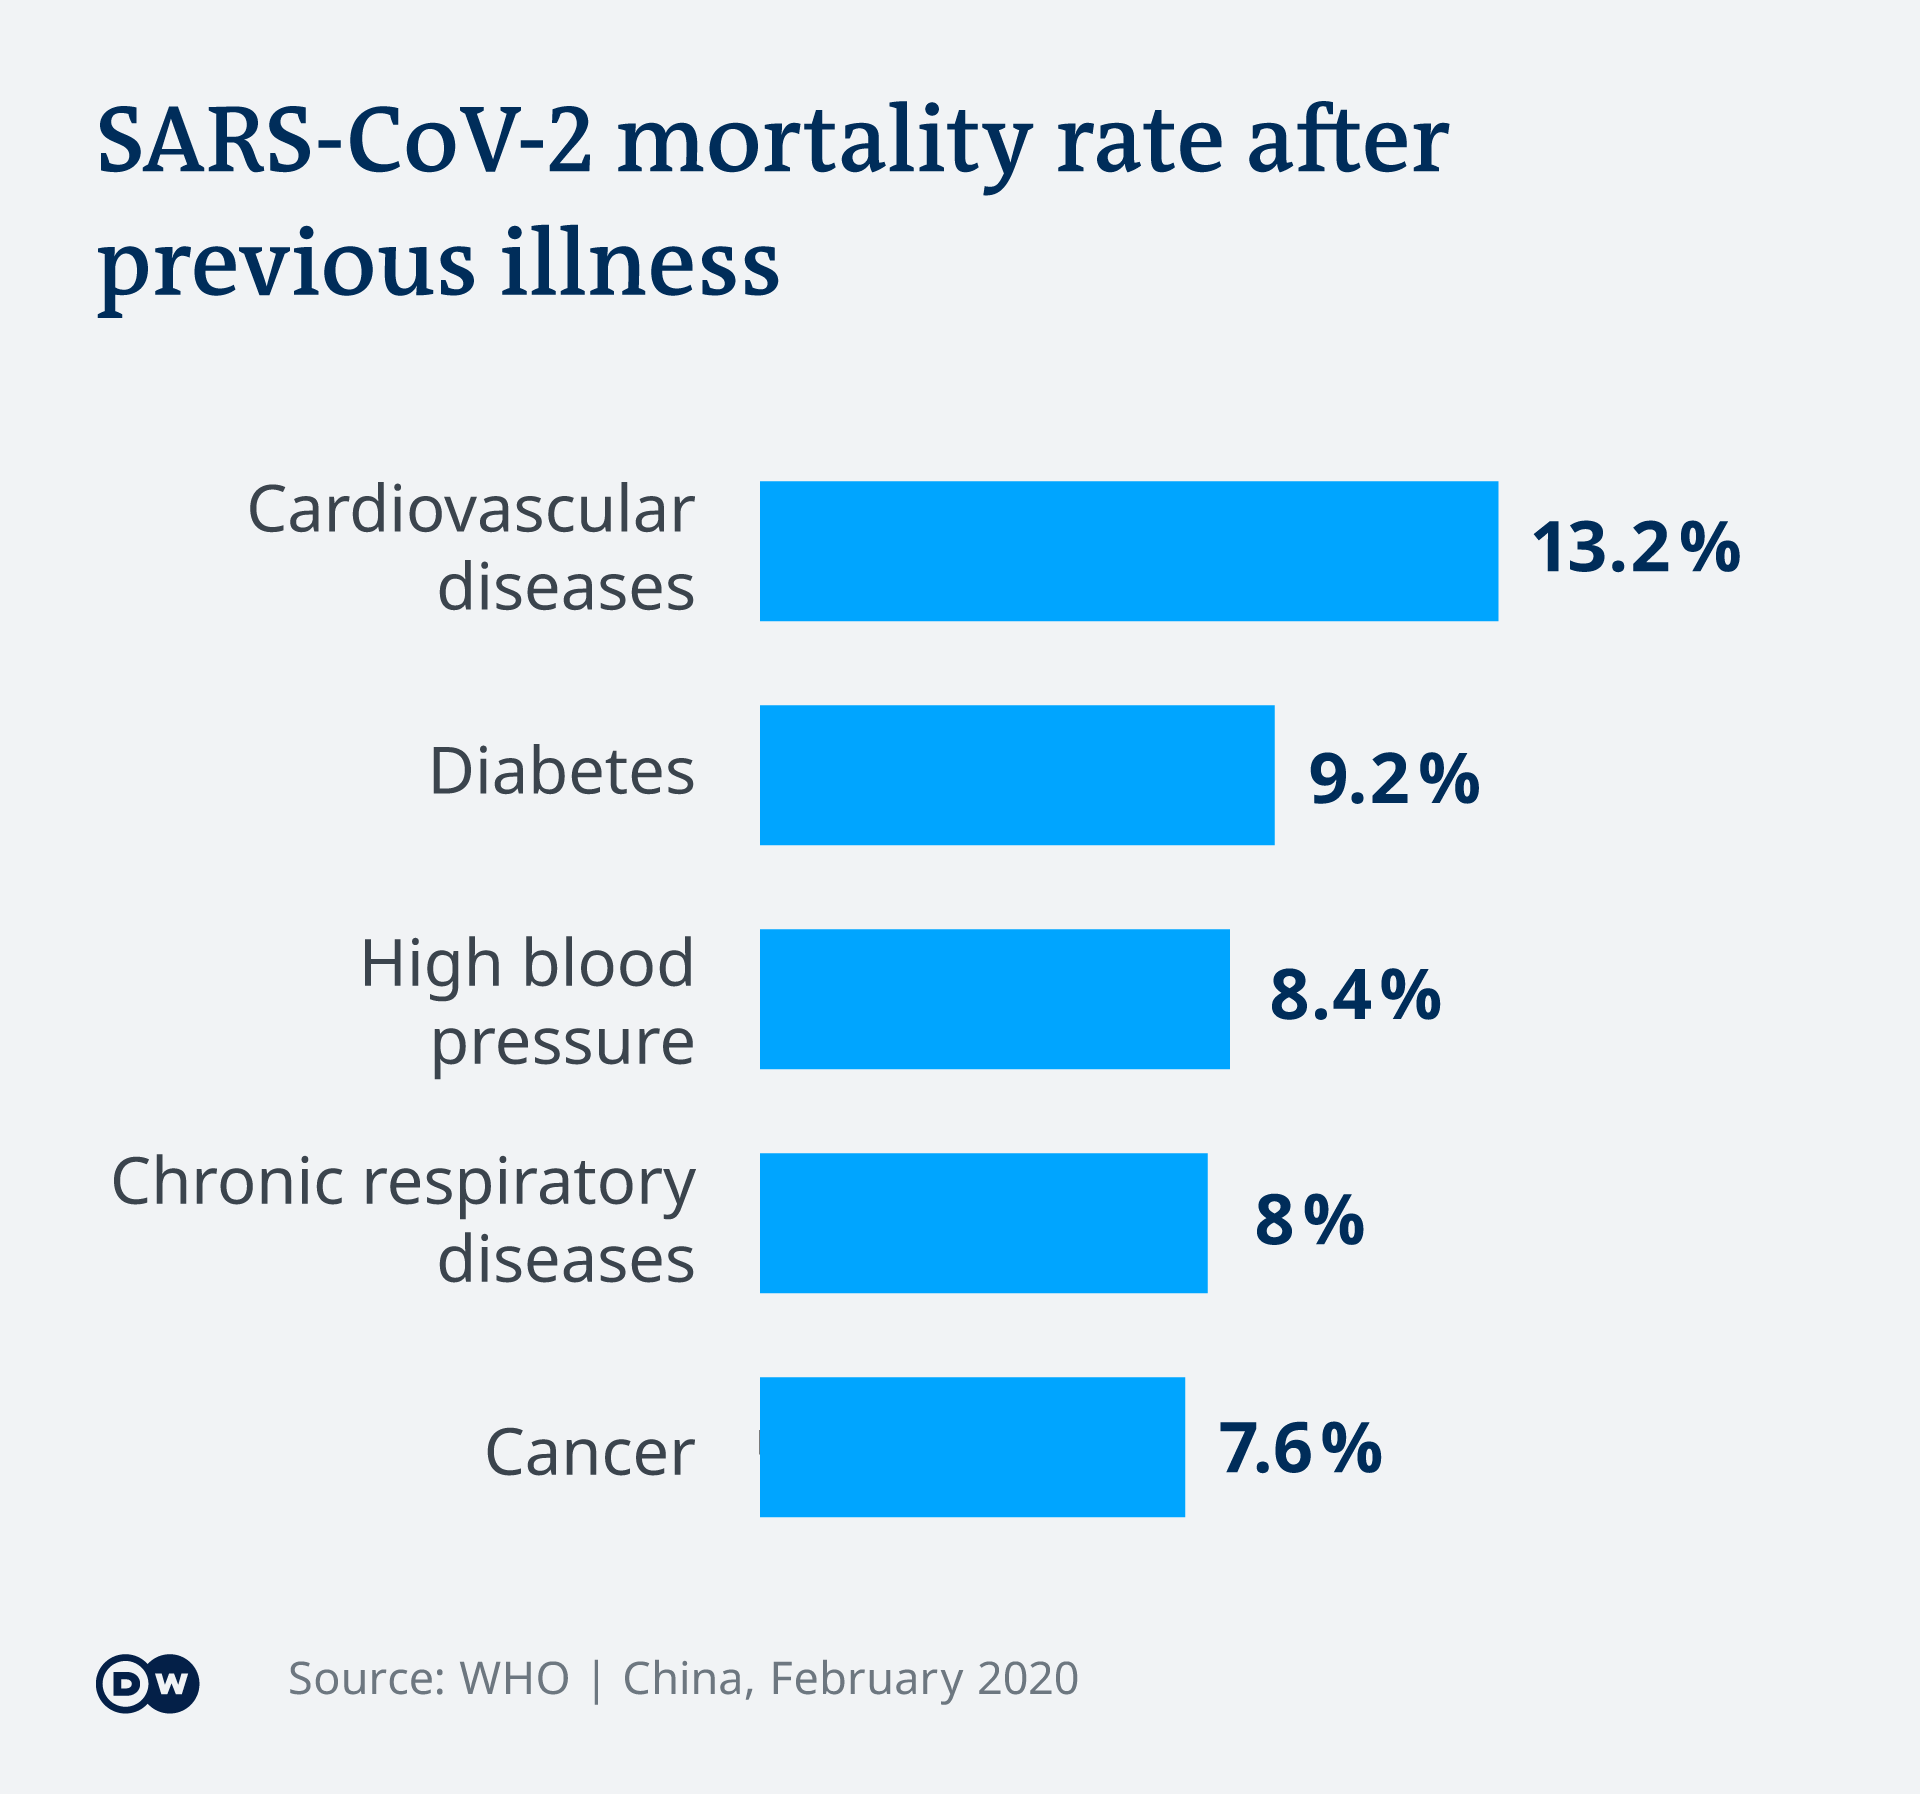 Diagram showing mortality rate according to pre-existing conditions